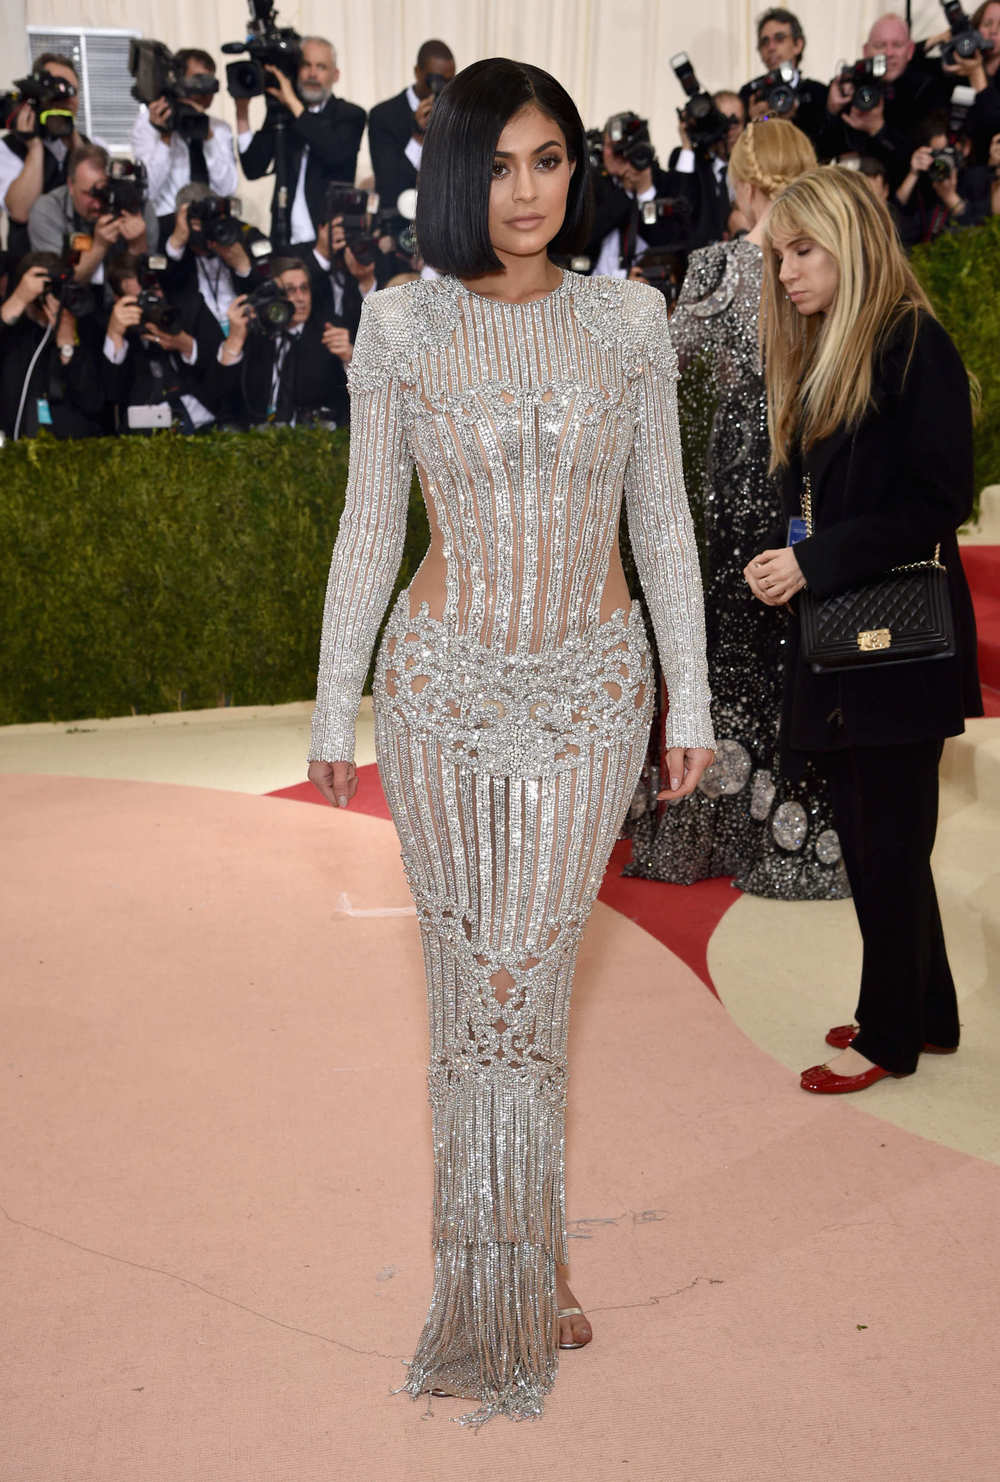 Kylie Jenner in Balmain at the Met Gala 2016.